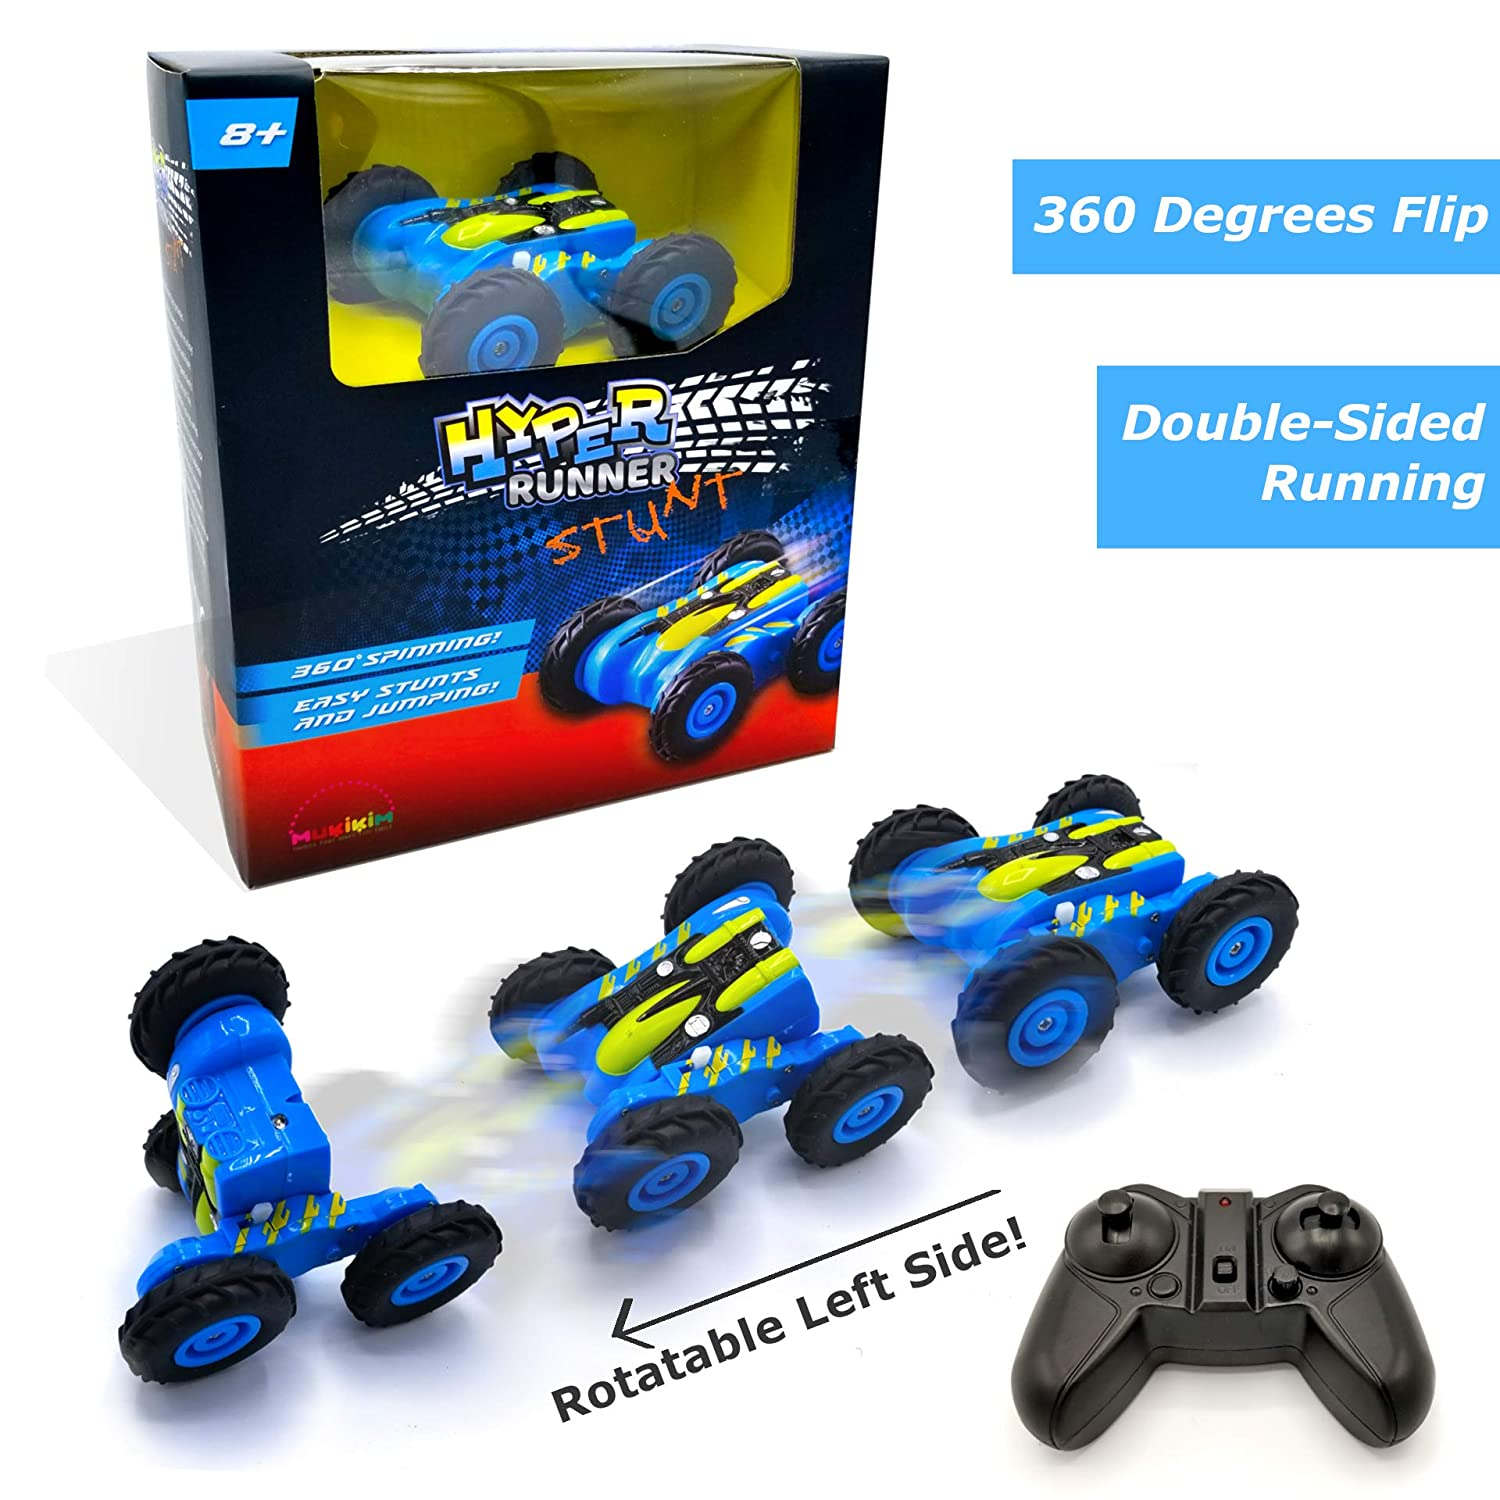 MukikiM Hyper Runner Stunt Remote Control Race Car Rocks Super High-Speed Stunts /& Moves Quick USB Charge 360/° Spins /& Double-Sided Runs with Fun Light Not Your Normal RC Car! Blue